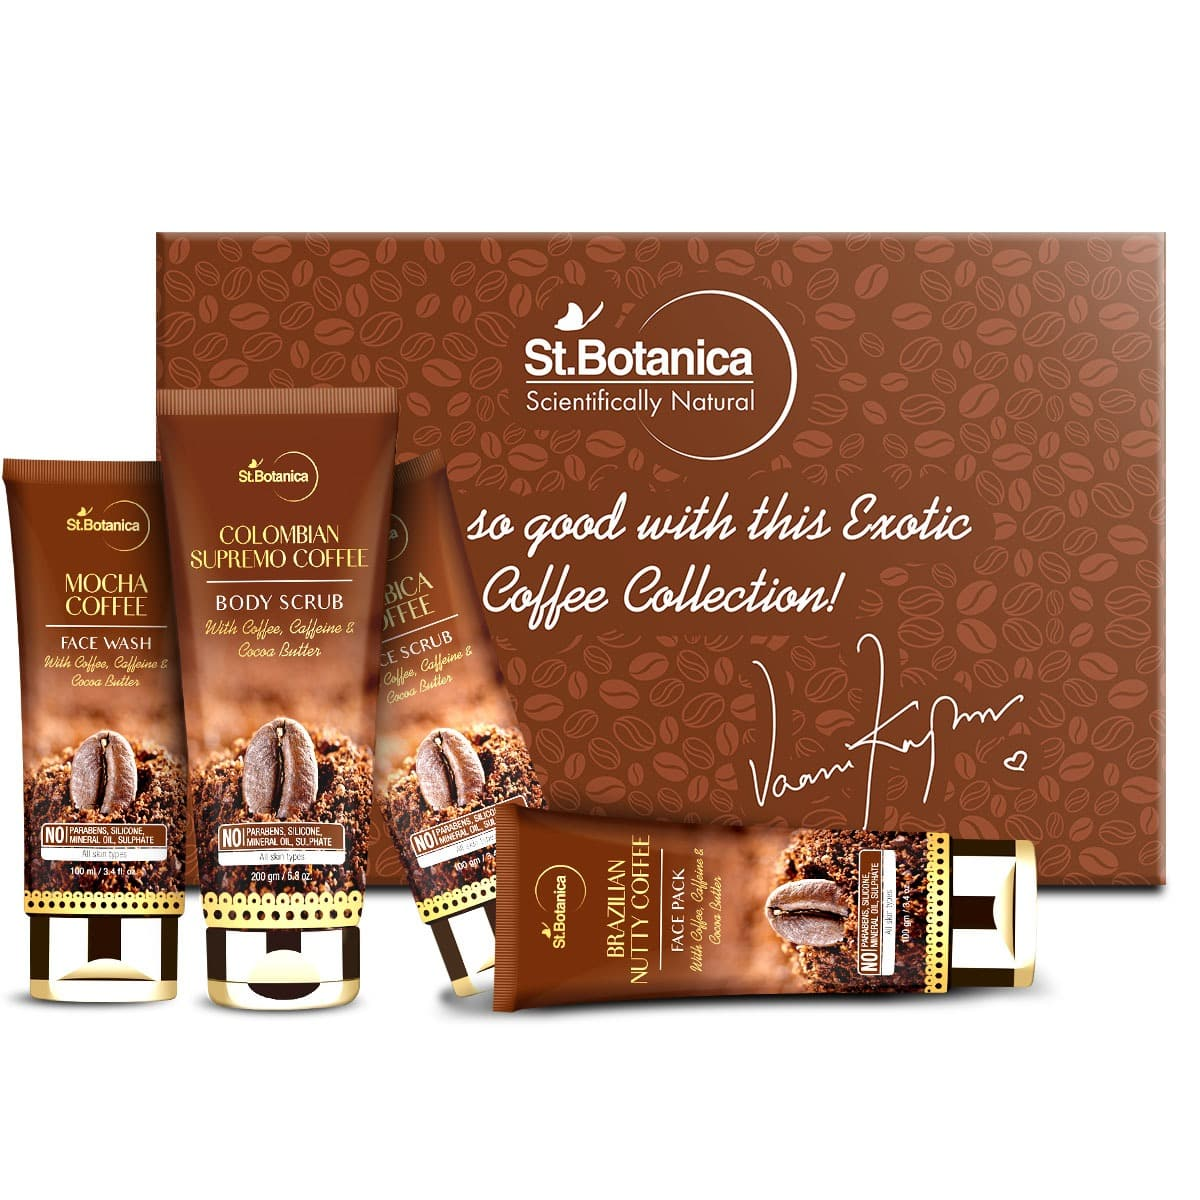 Coffee Collection by St. Botanica